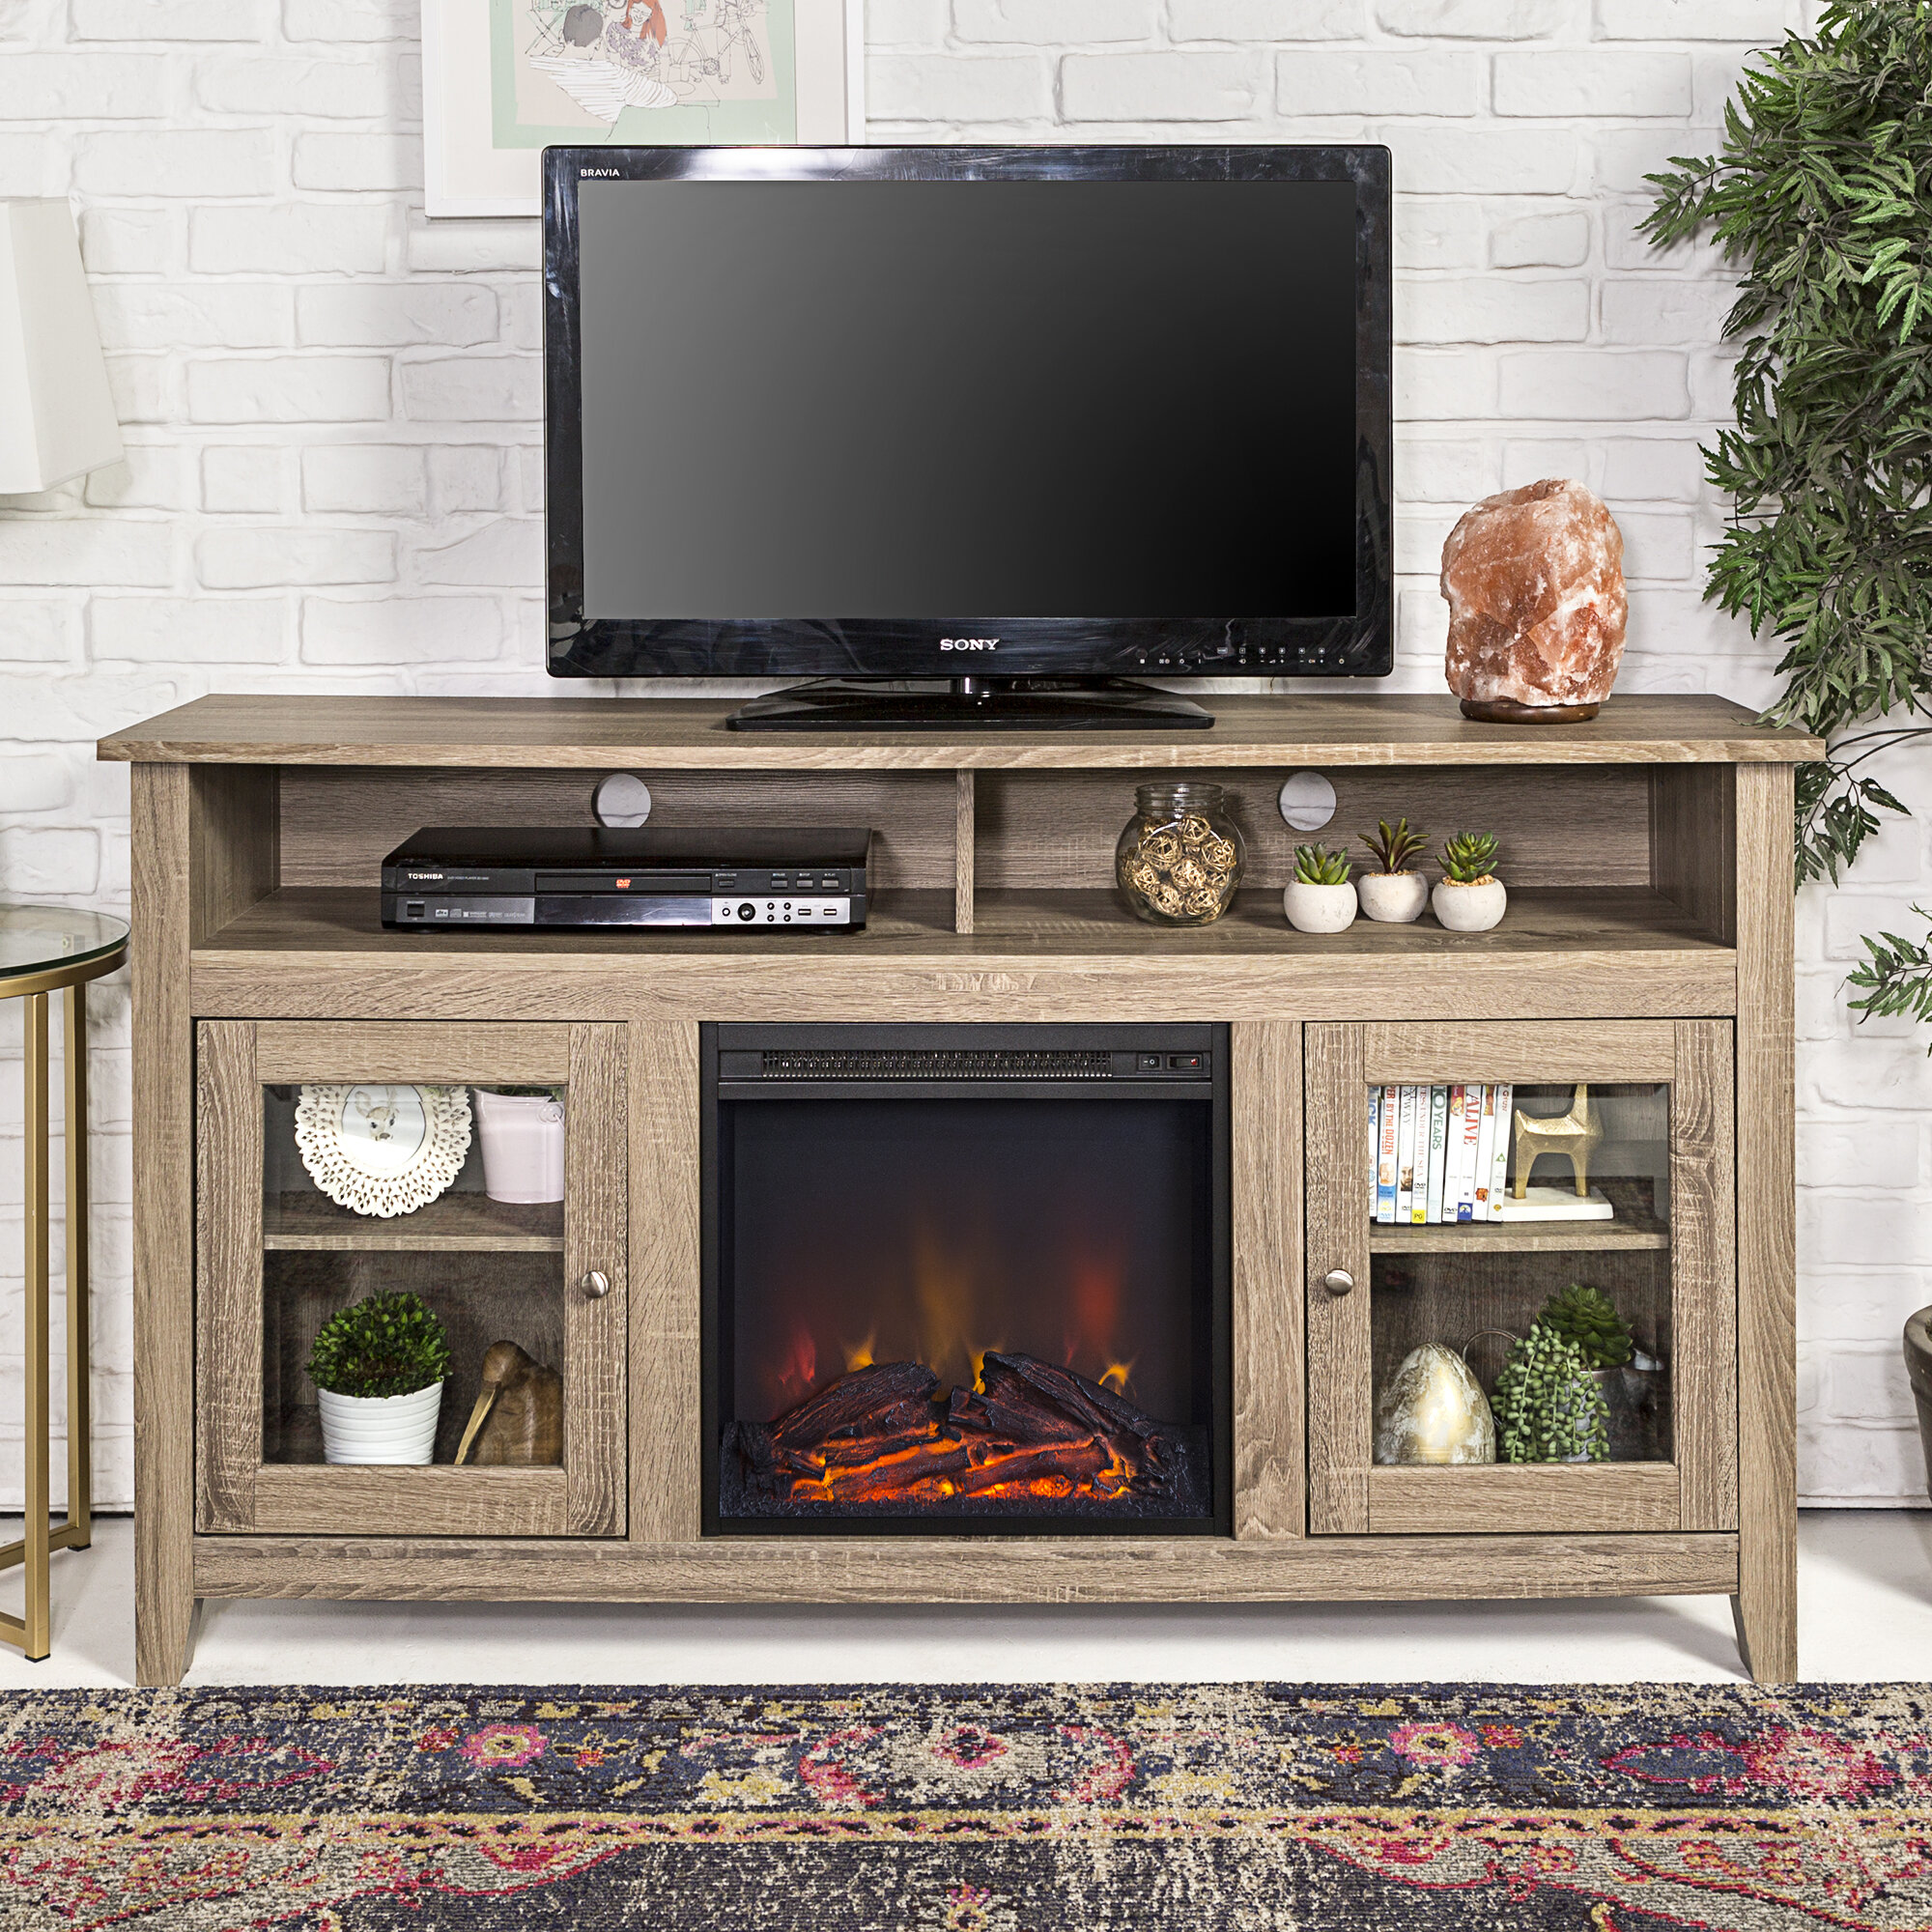 product dresser garden fireplace tv to a tvs today shipping console inches ameriwood n up home overstock for vaughn free wide